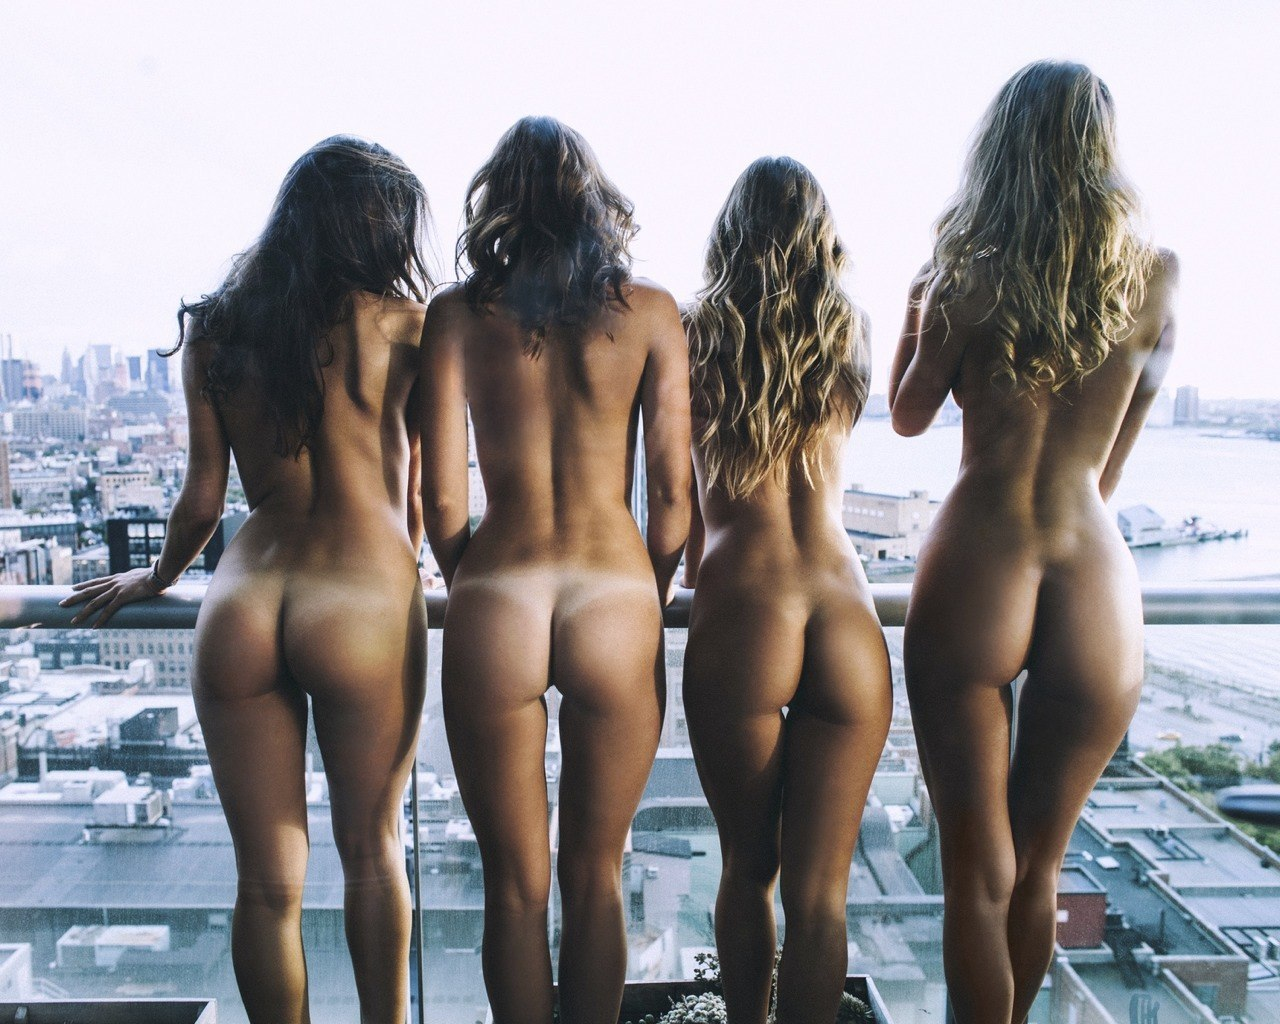 hot fit girls topless